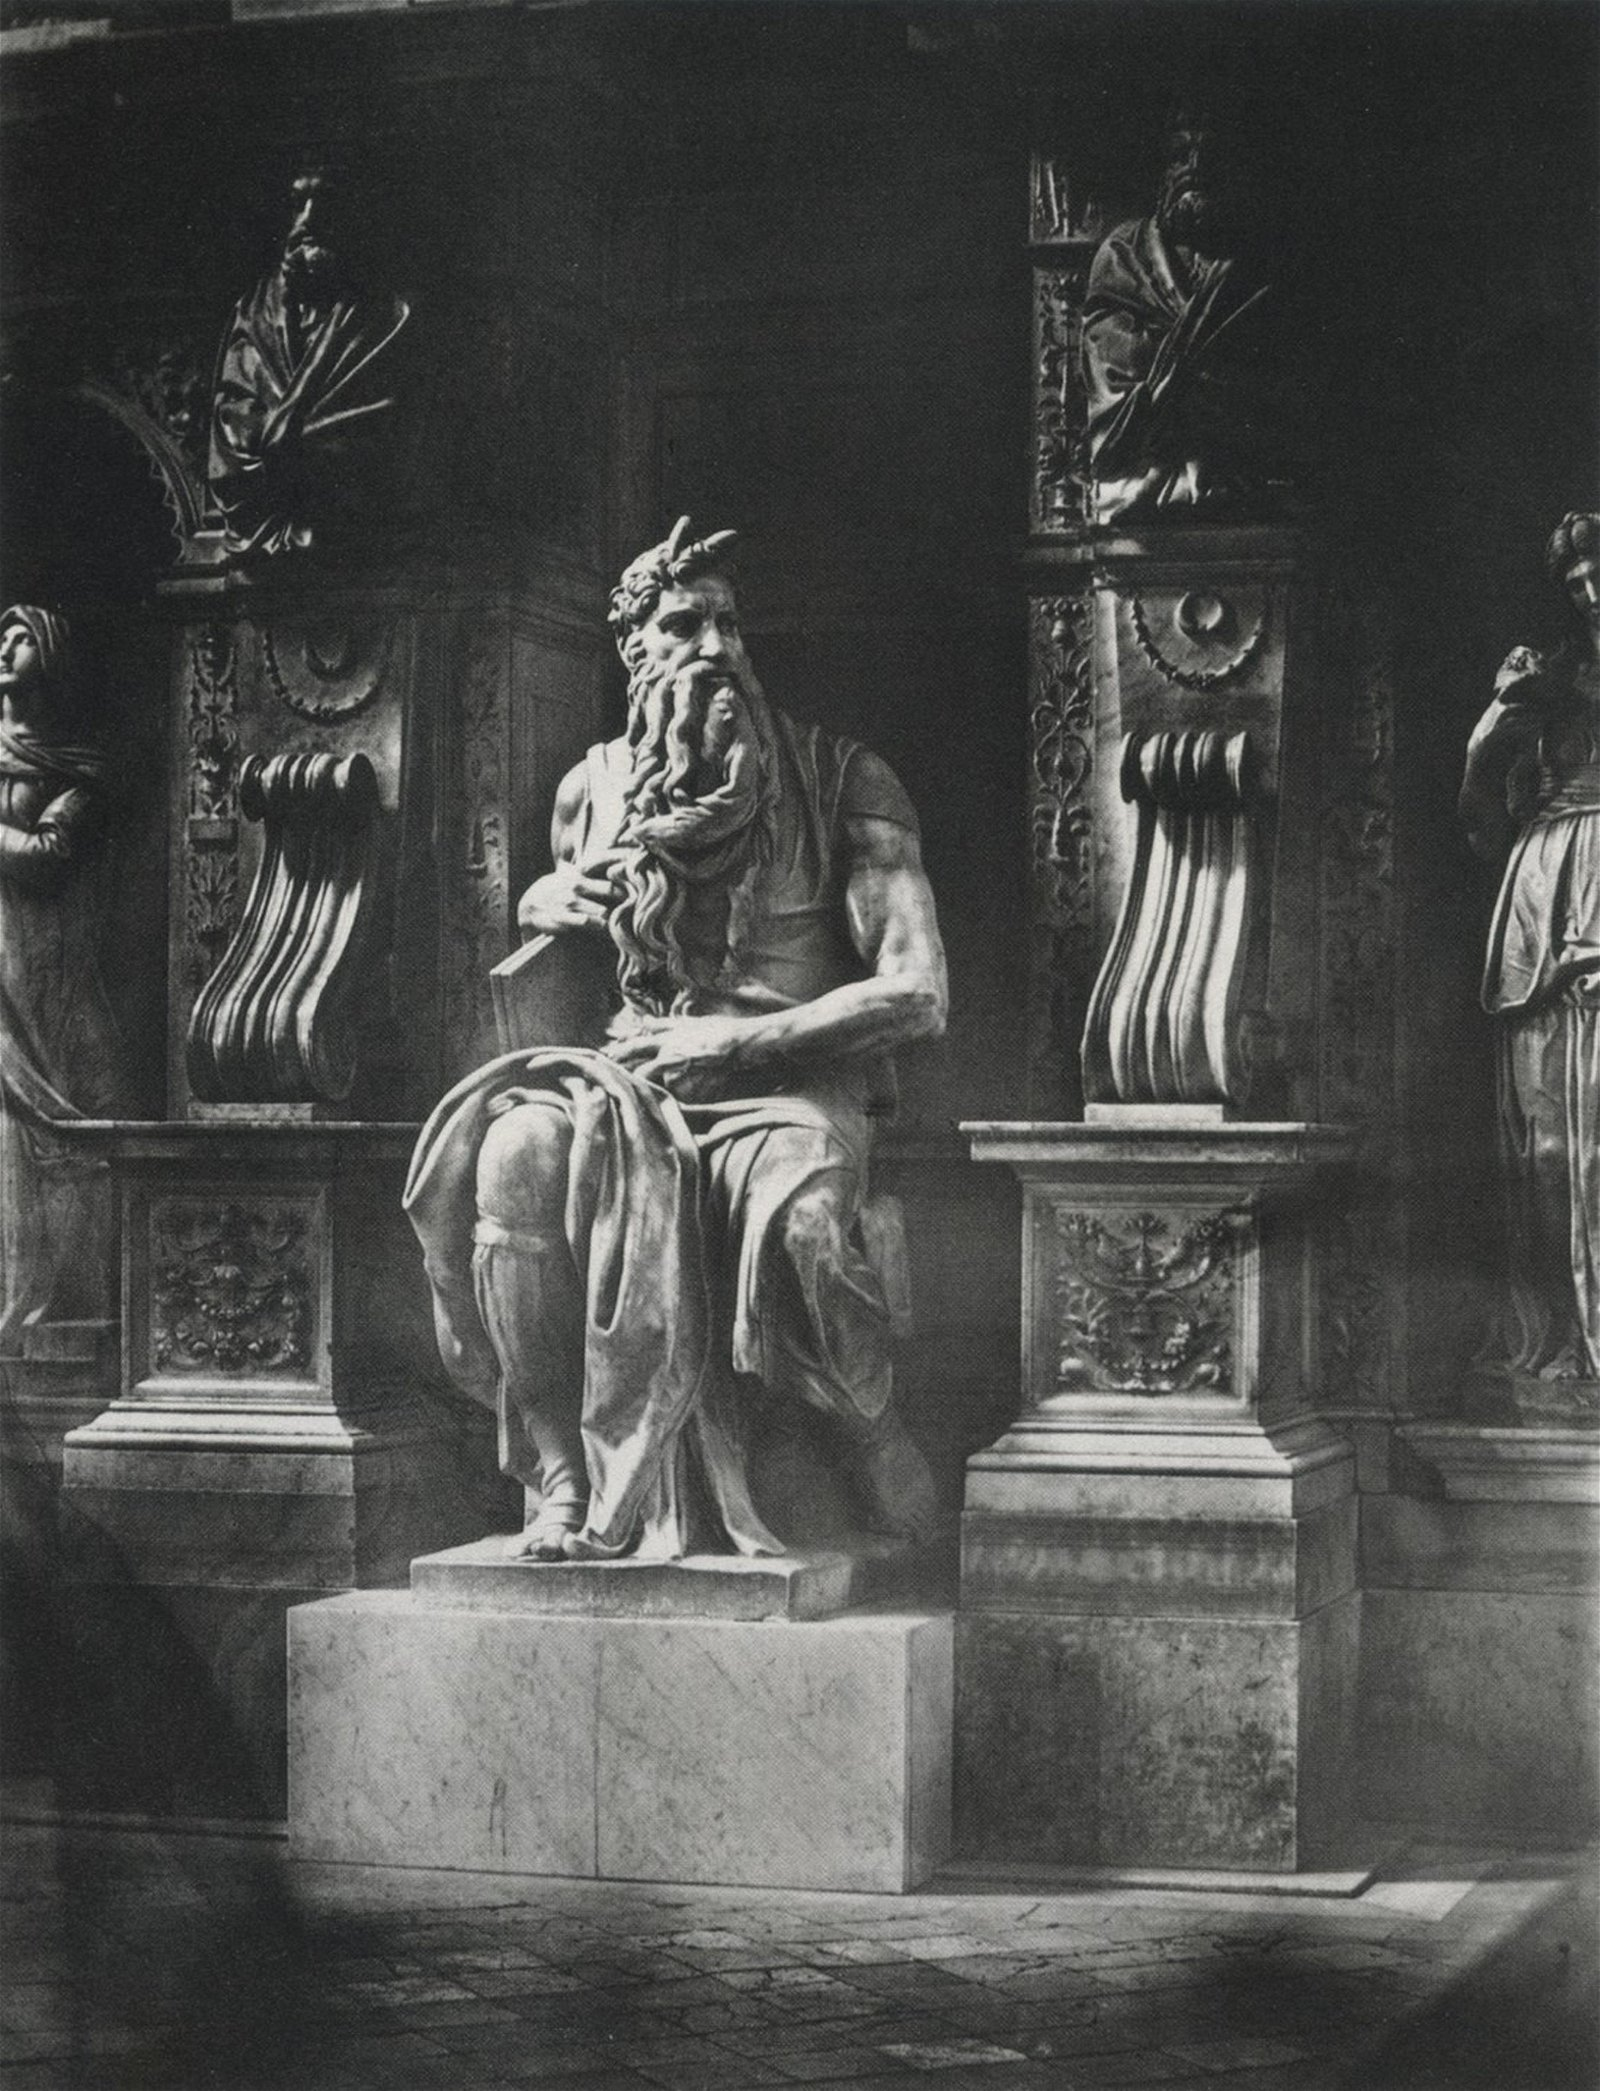 JAMES ANDERSON - Michelangelo's Moses, 1850s